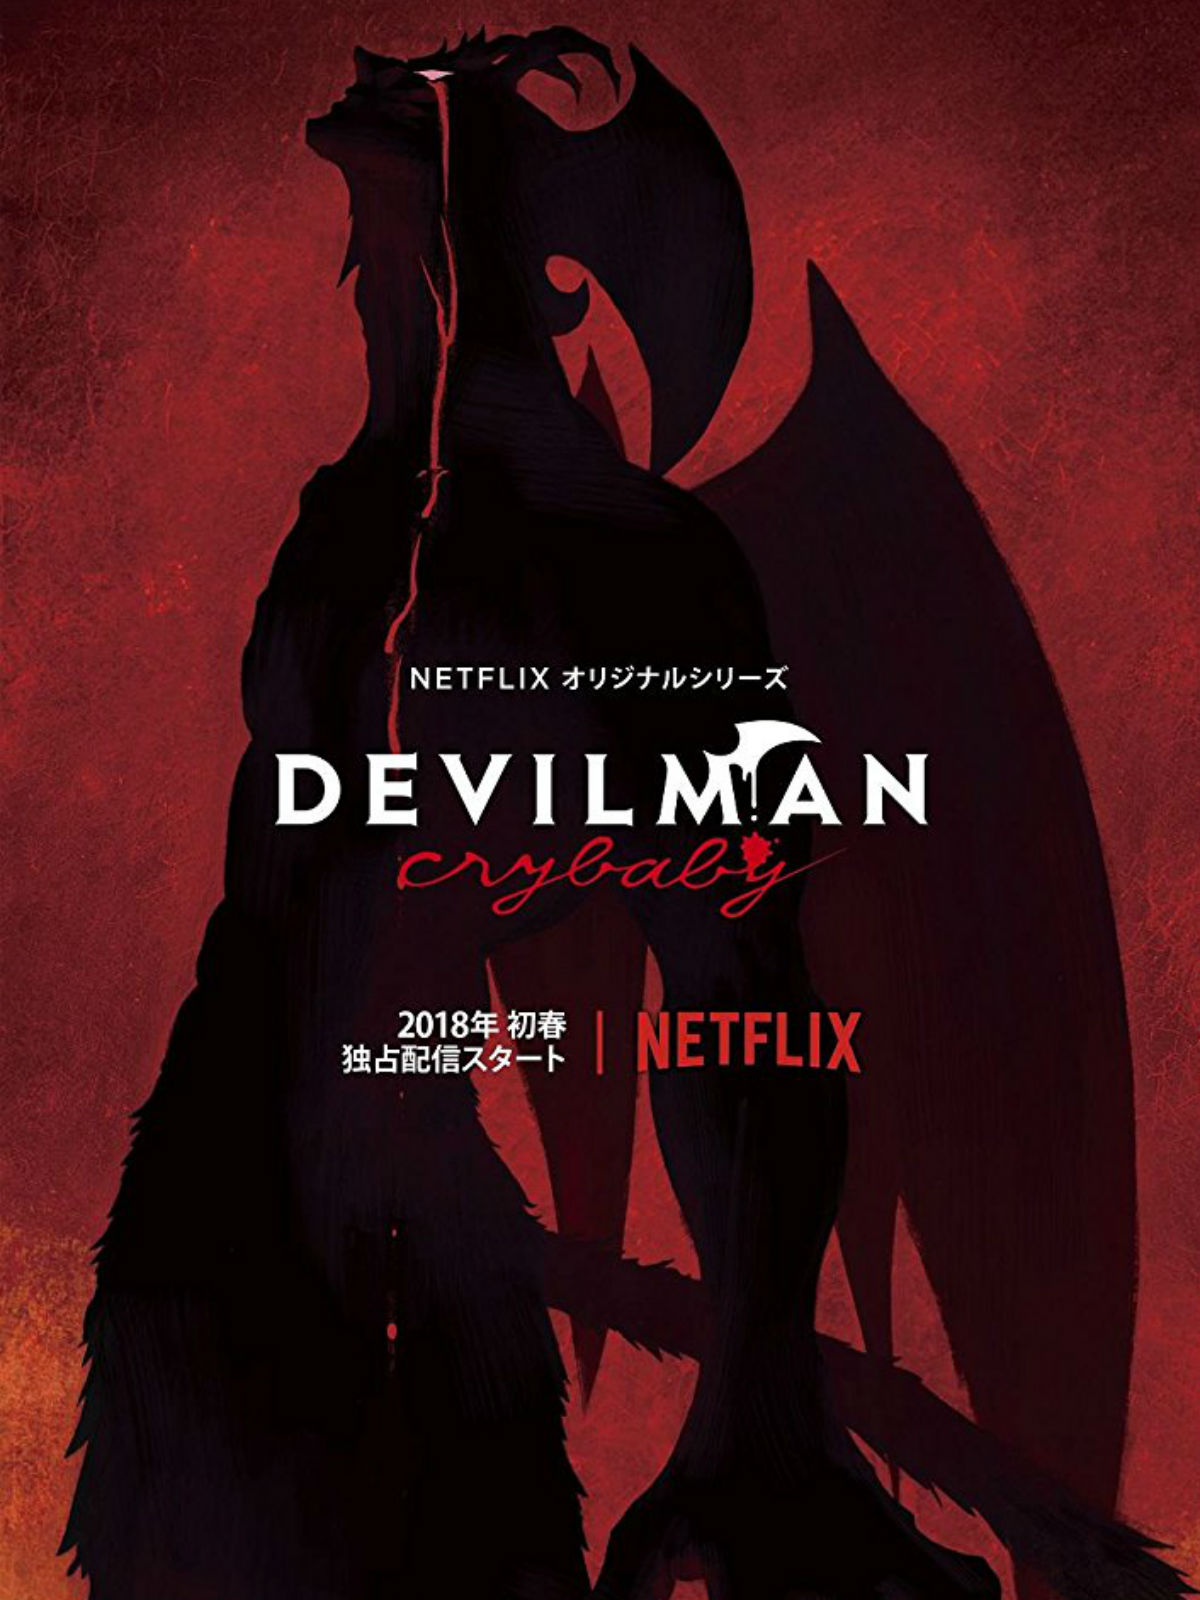 Devilman Crybaby streaming